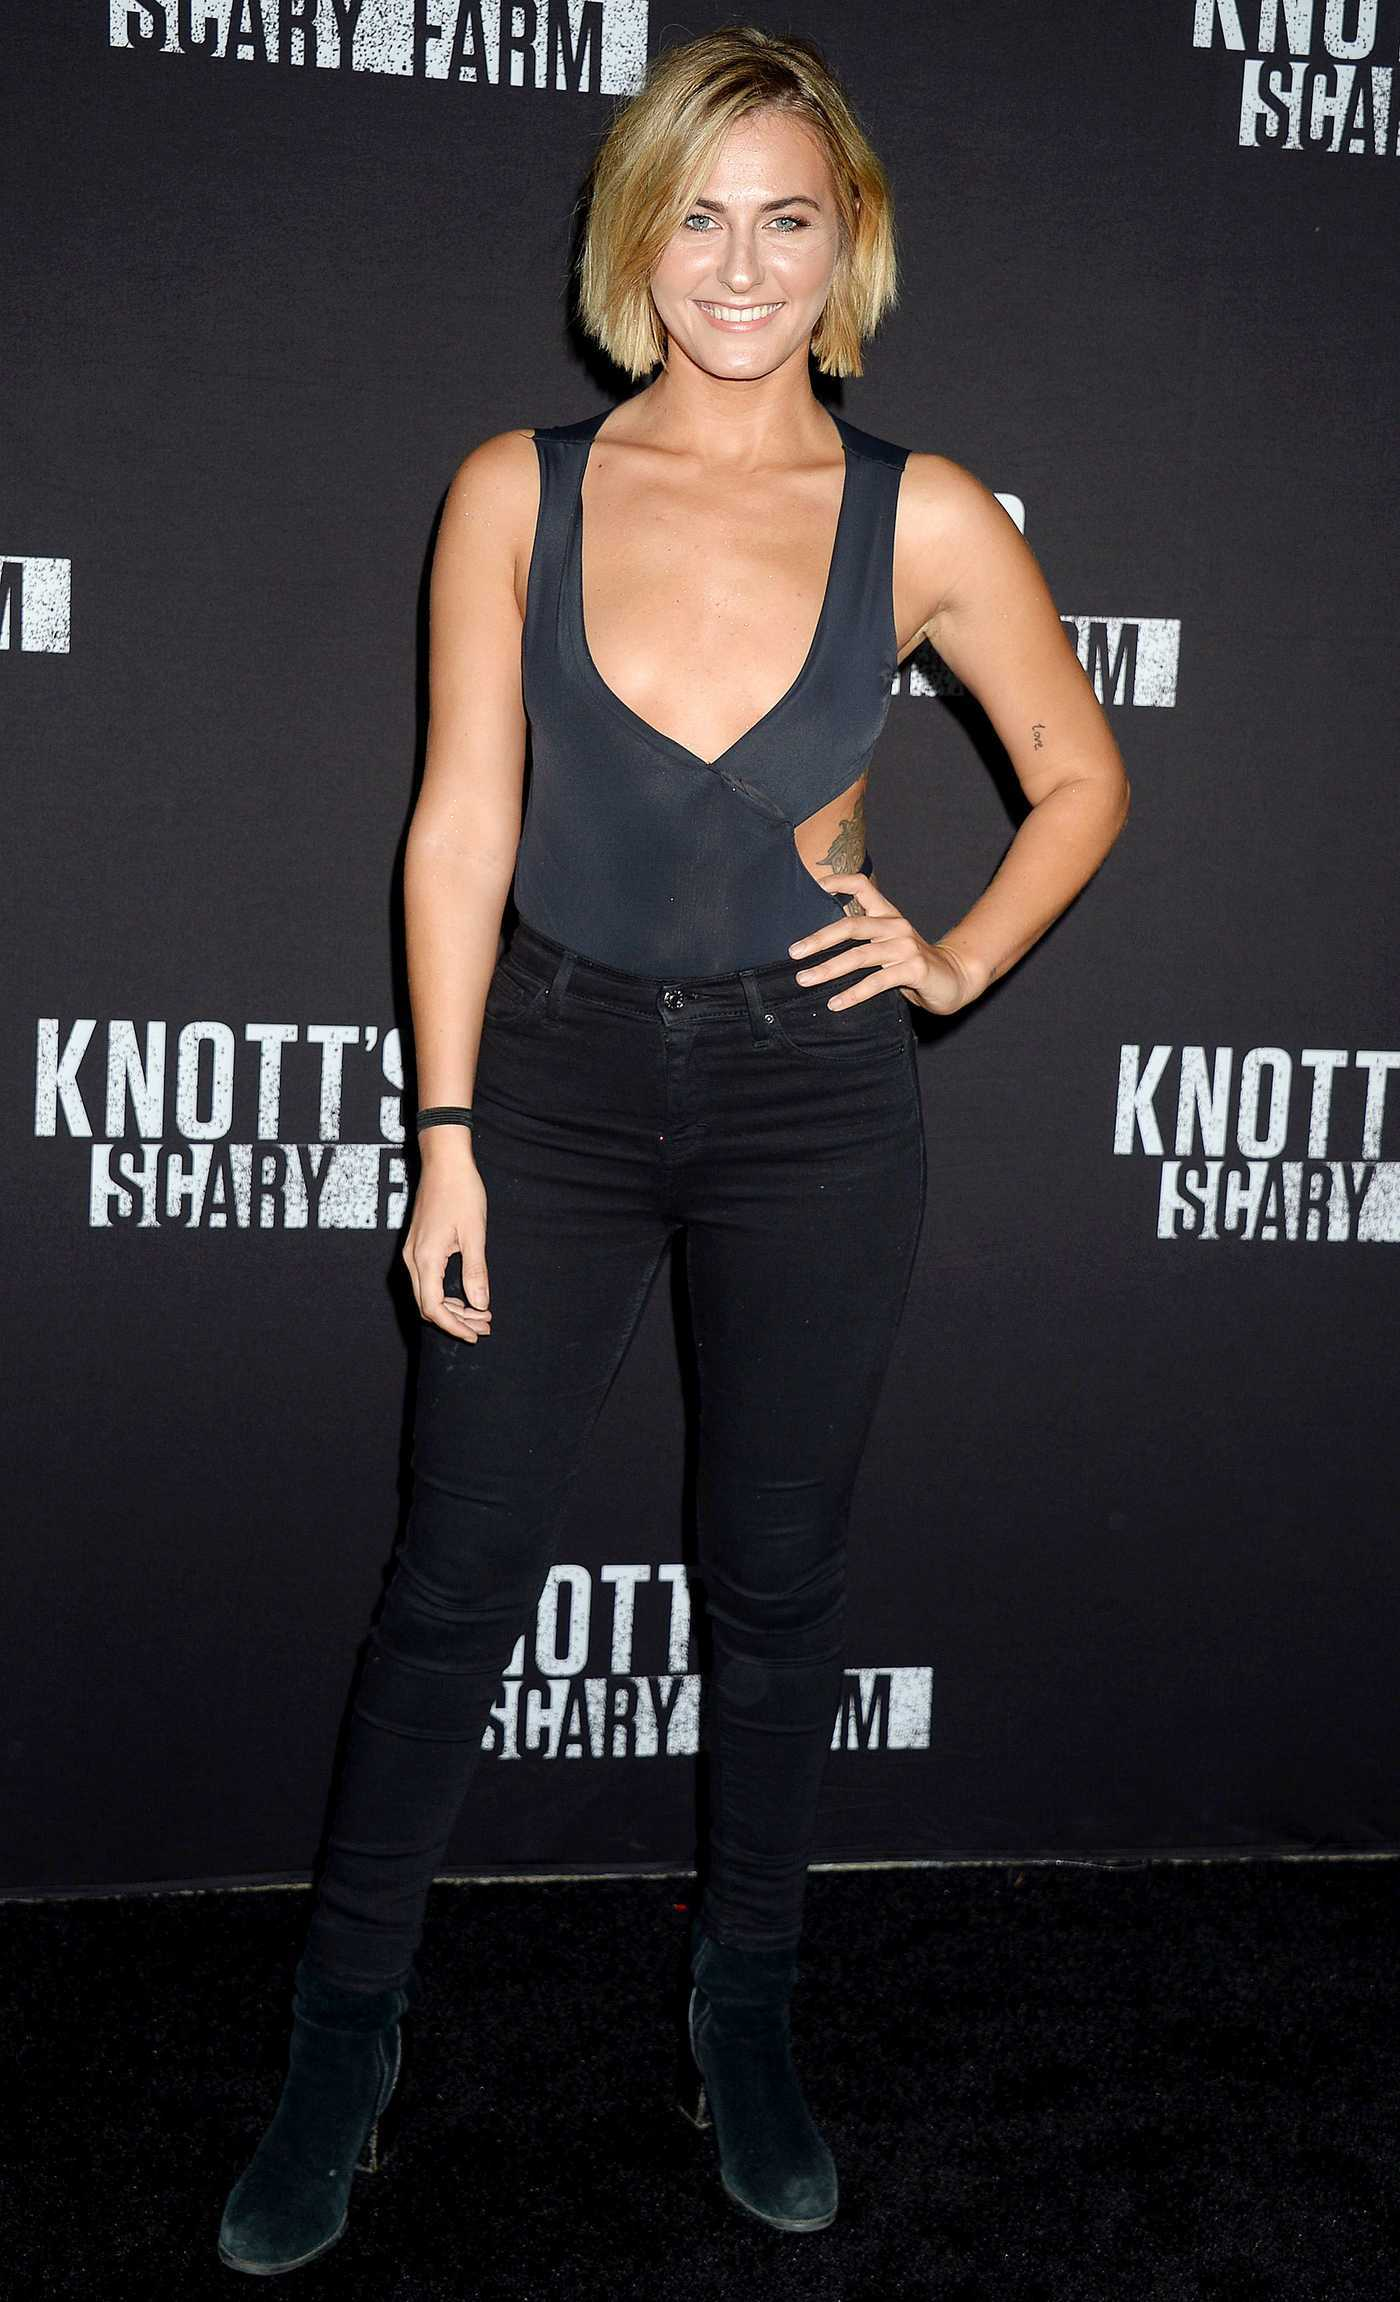 Scout Taylor-Compton at the Knott's Scary Farm Celebrity Night in Buena Park 09/29/2017